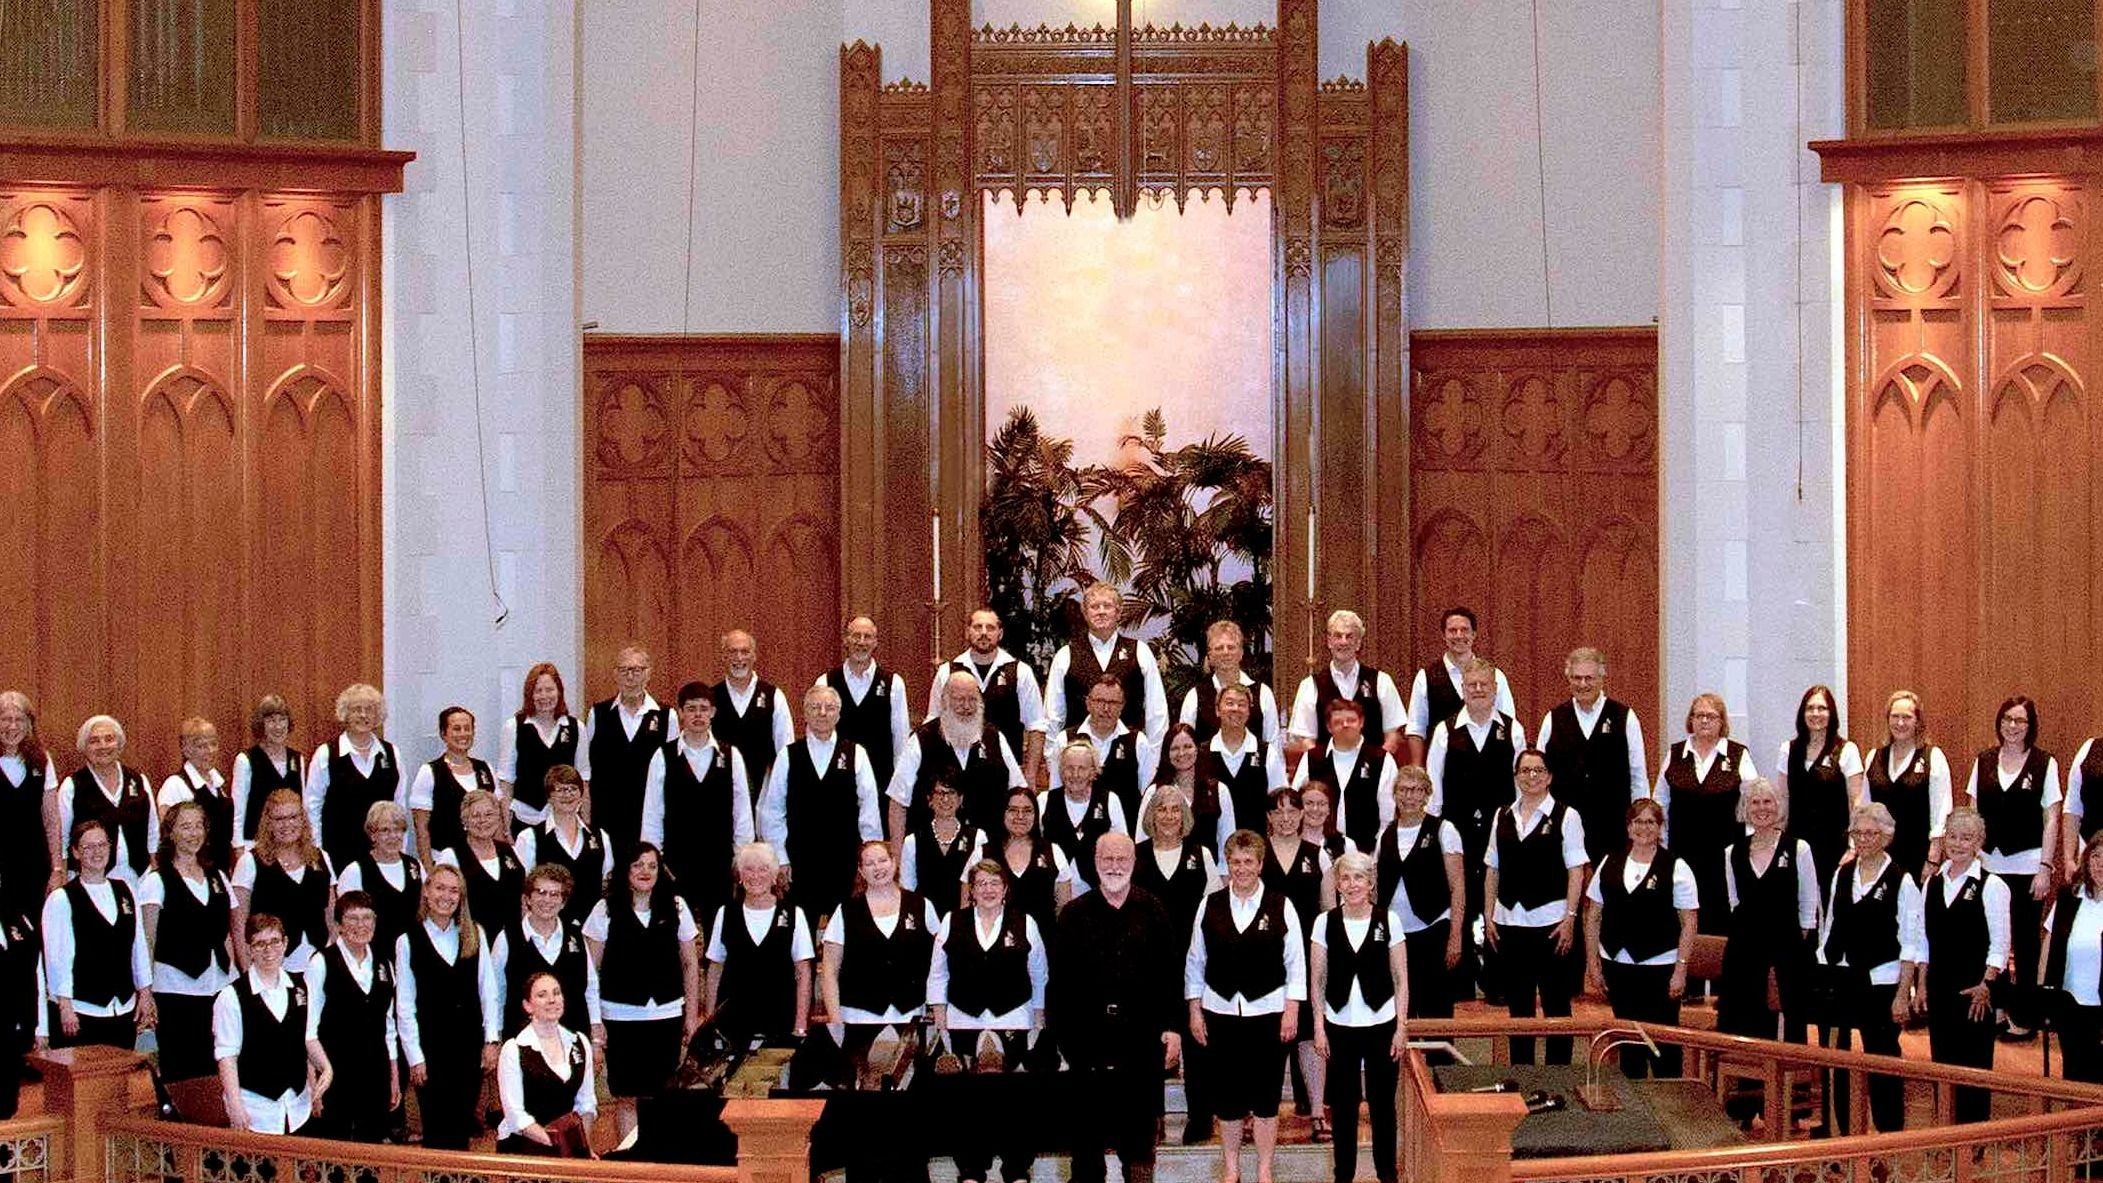 The Market Street Singers: a non-audition, mixed choir